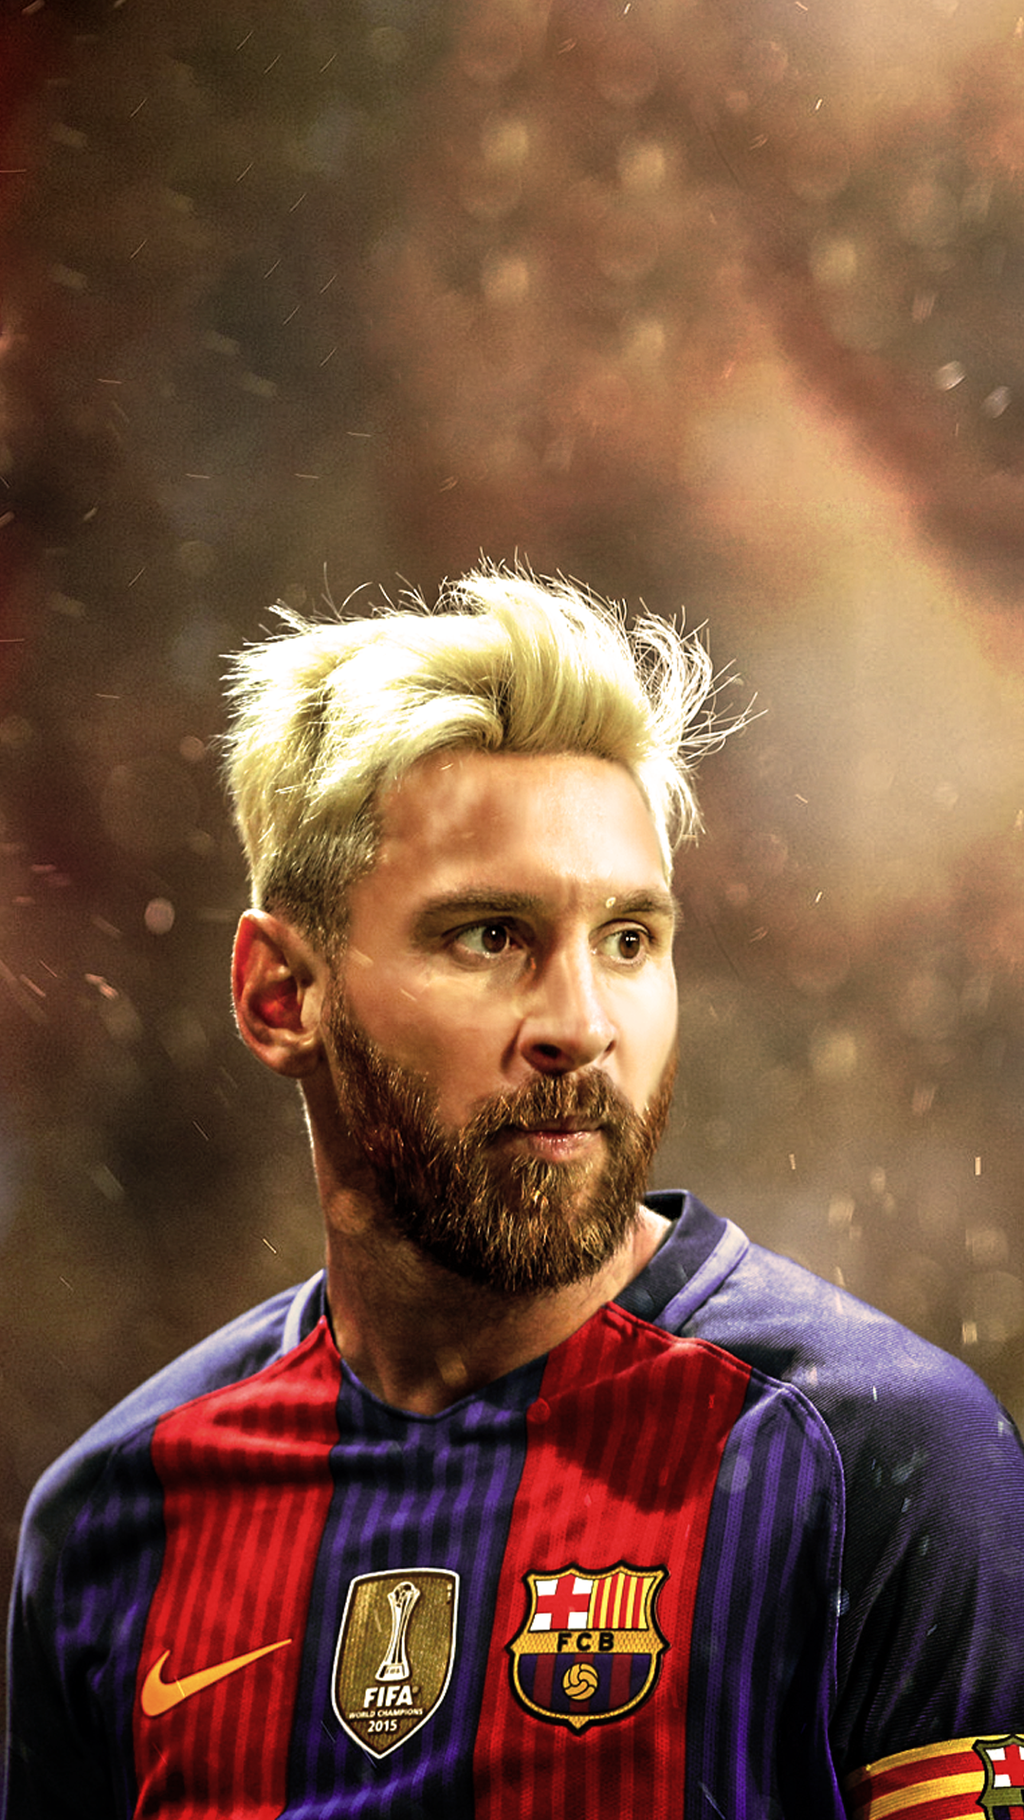 Messi Phone Wallpaper Hd Wallpapers Images